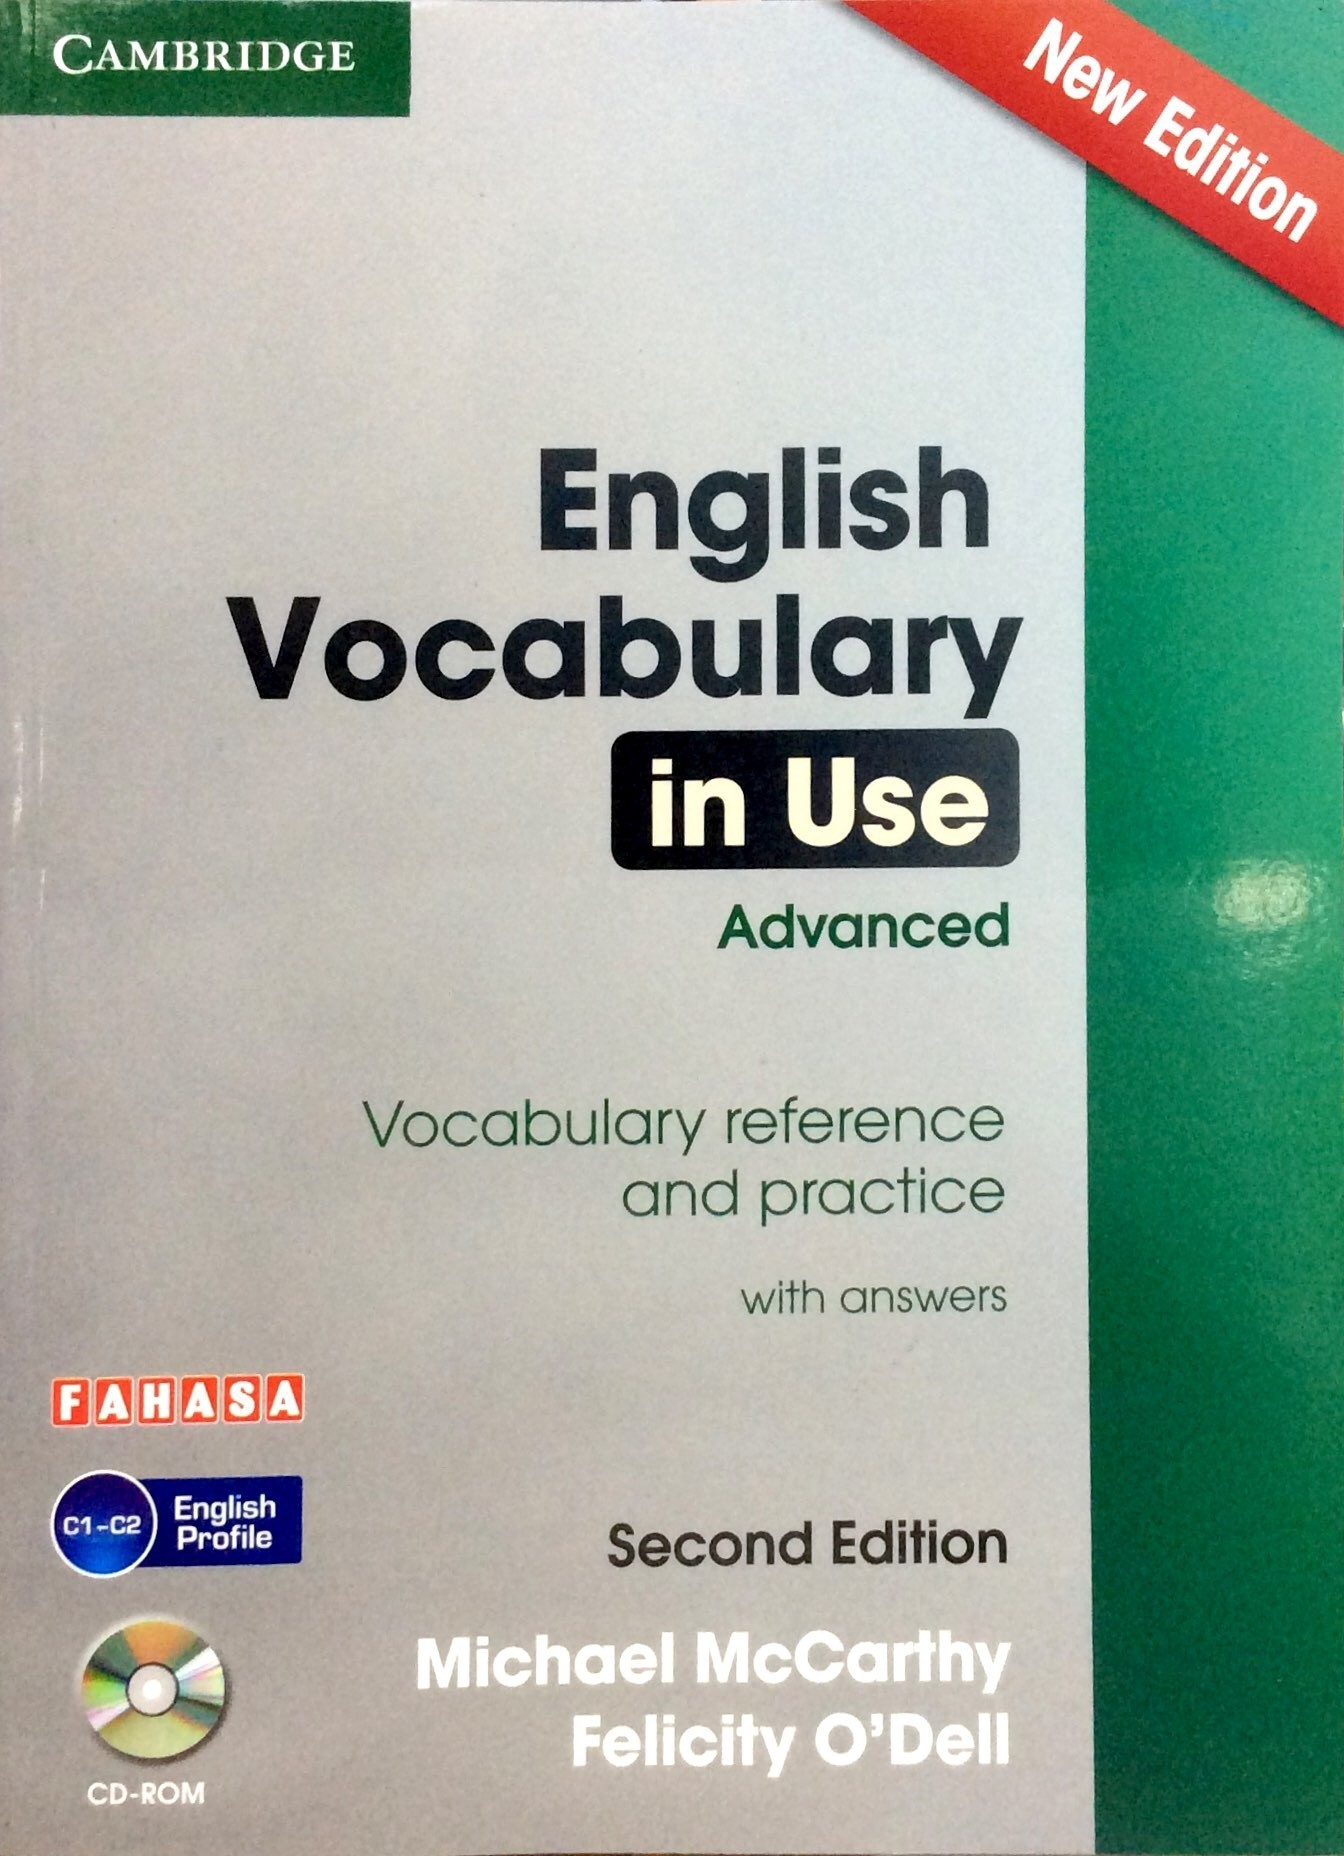 English Vocabulary in Use - Advanced (Sách kèm CD)